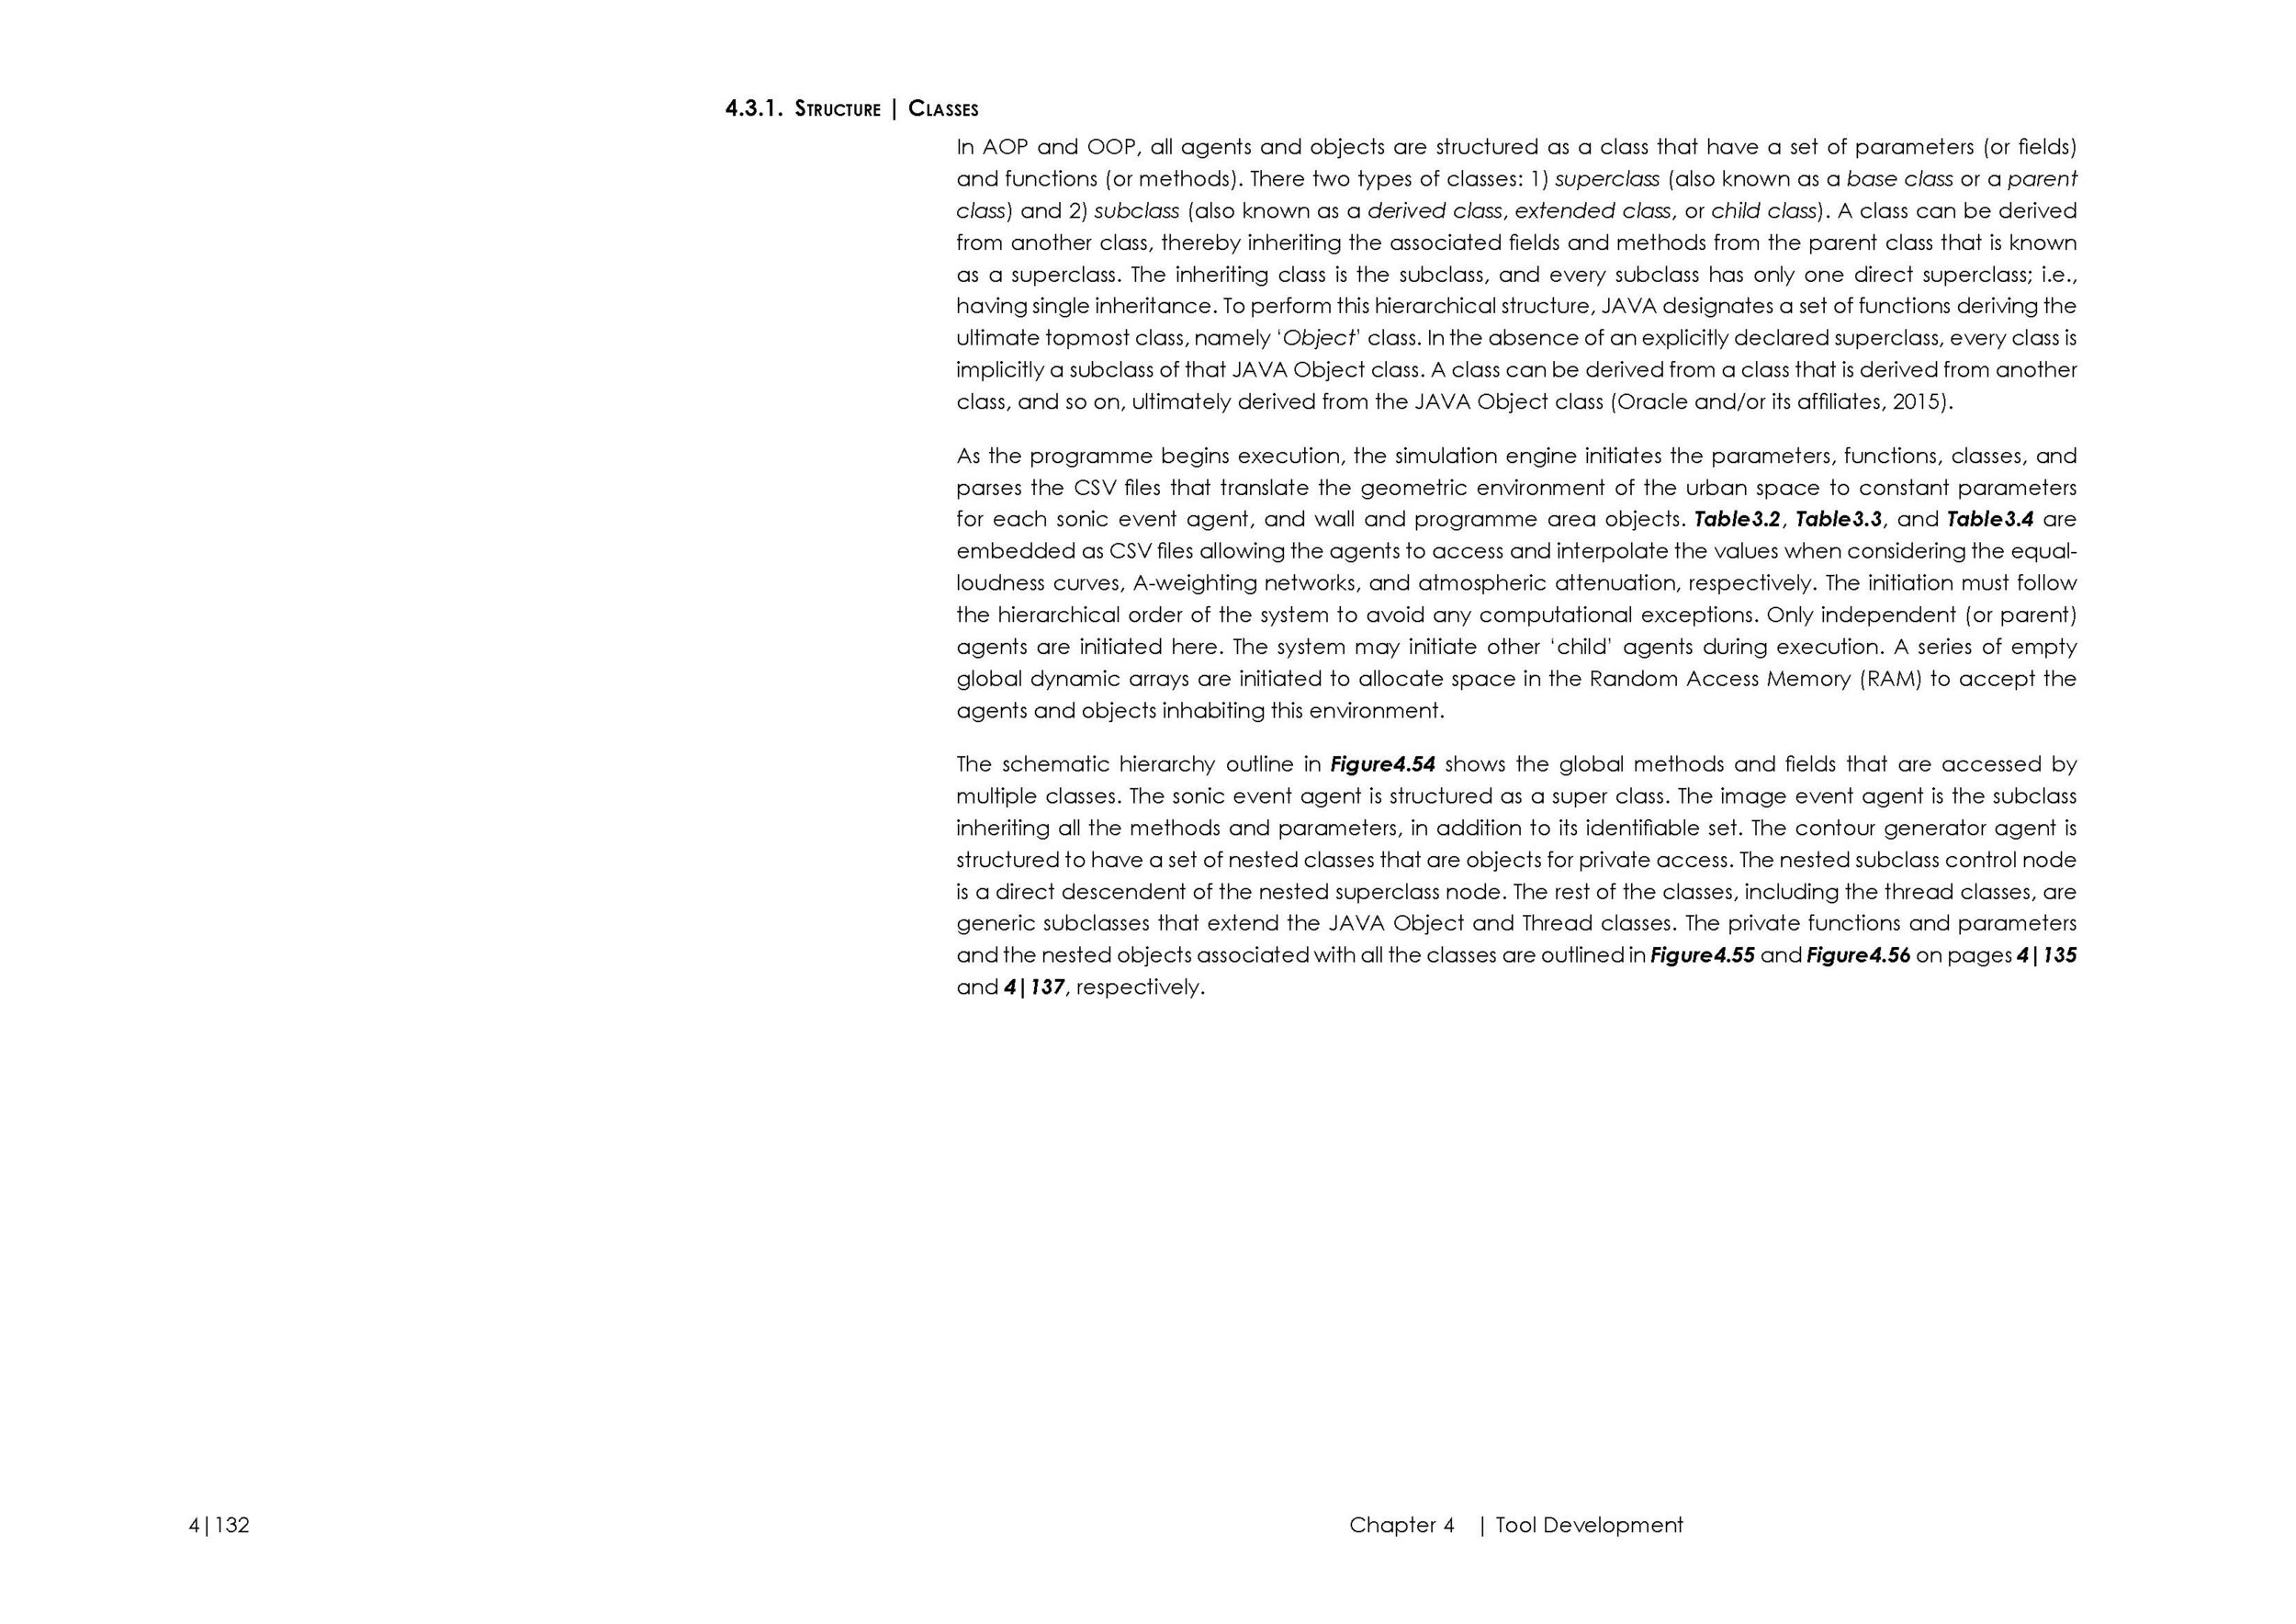 16.03.03_Thesis_01_Interactive_Page_168.jpg